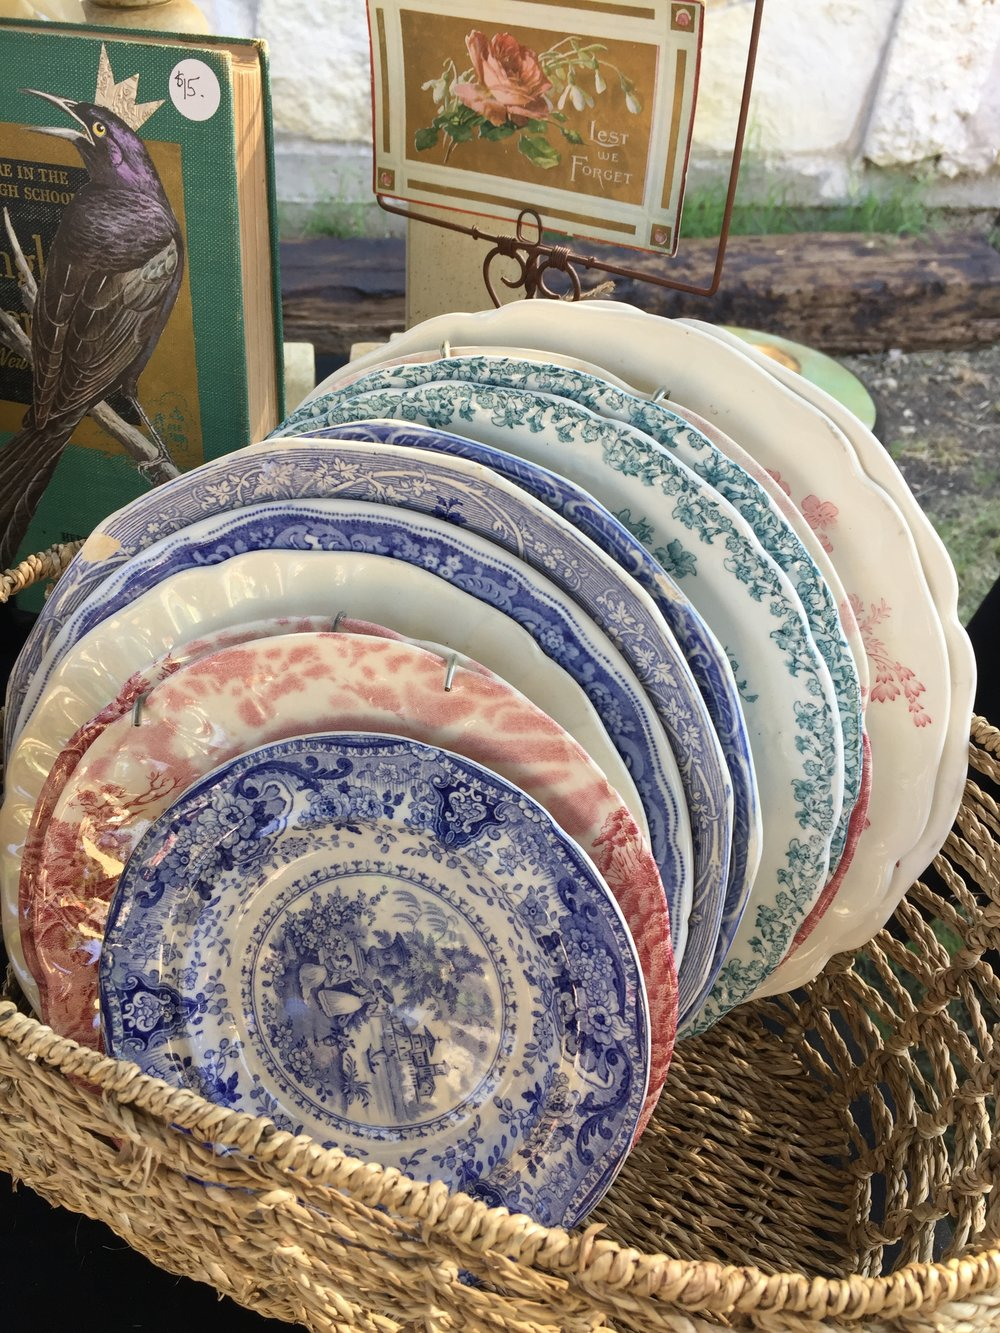 flea transferware dishes.JPG